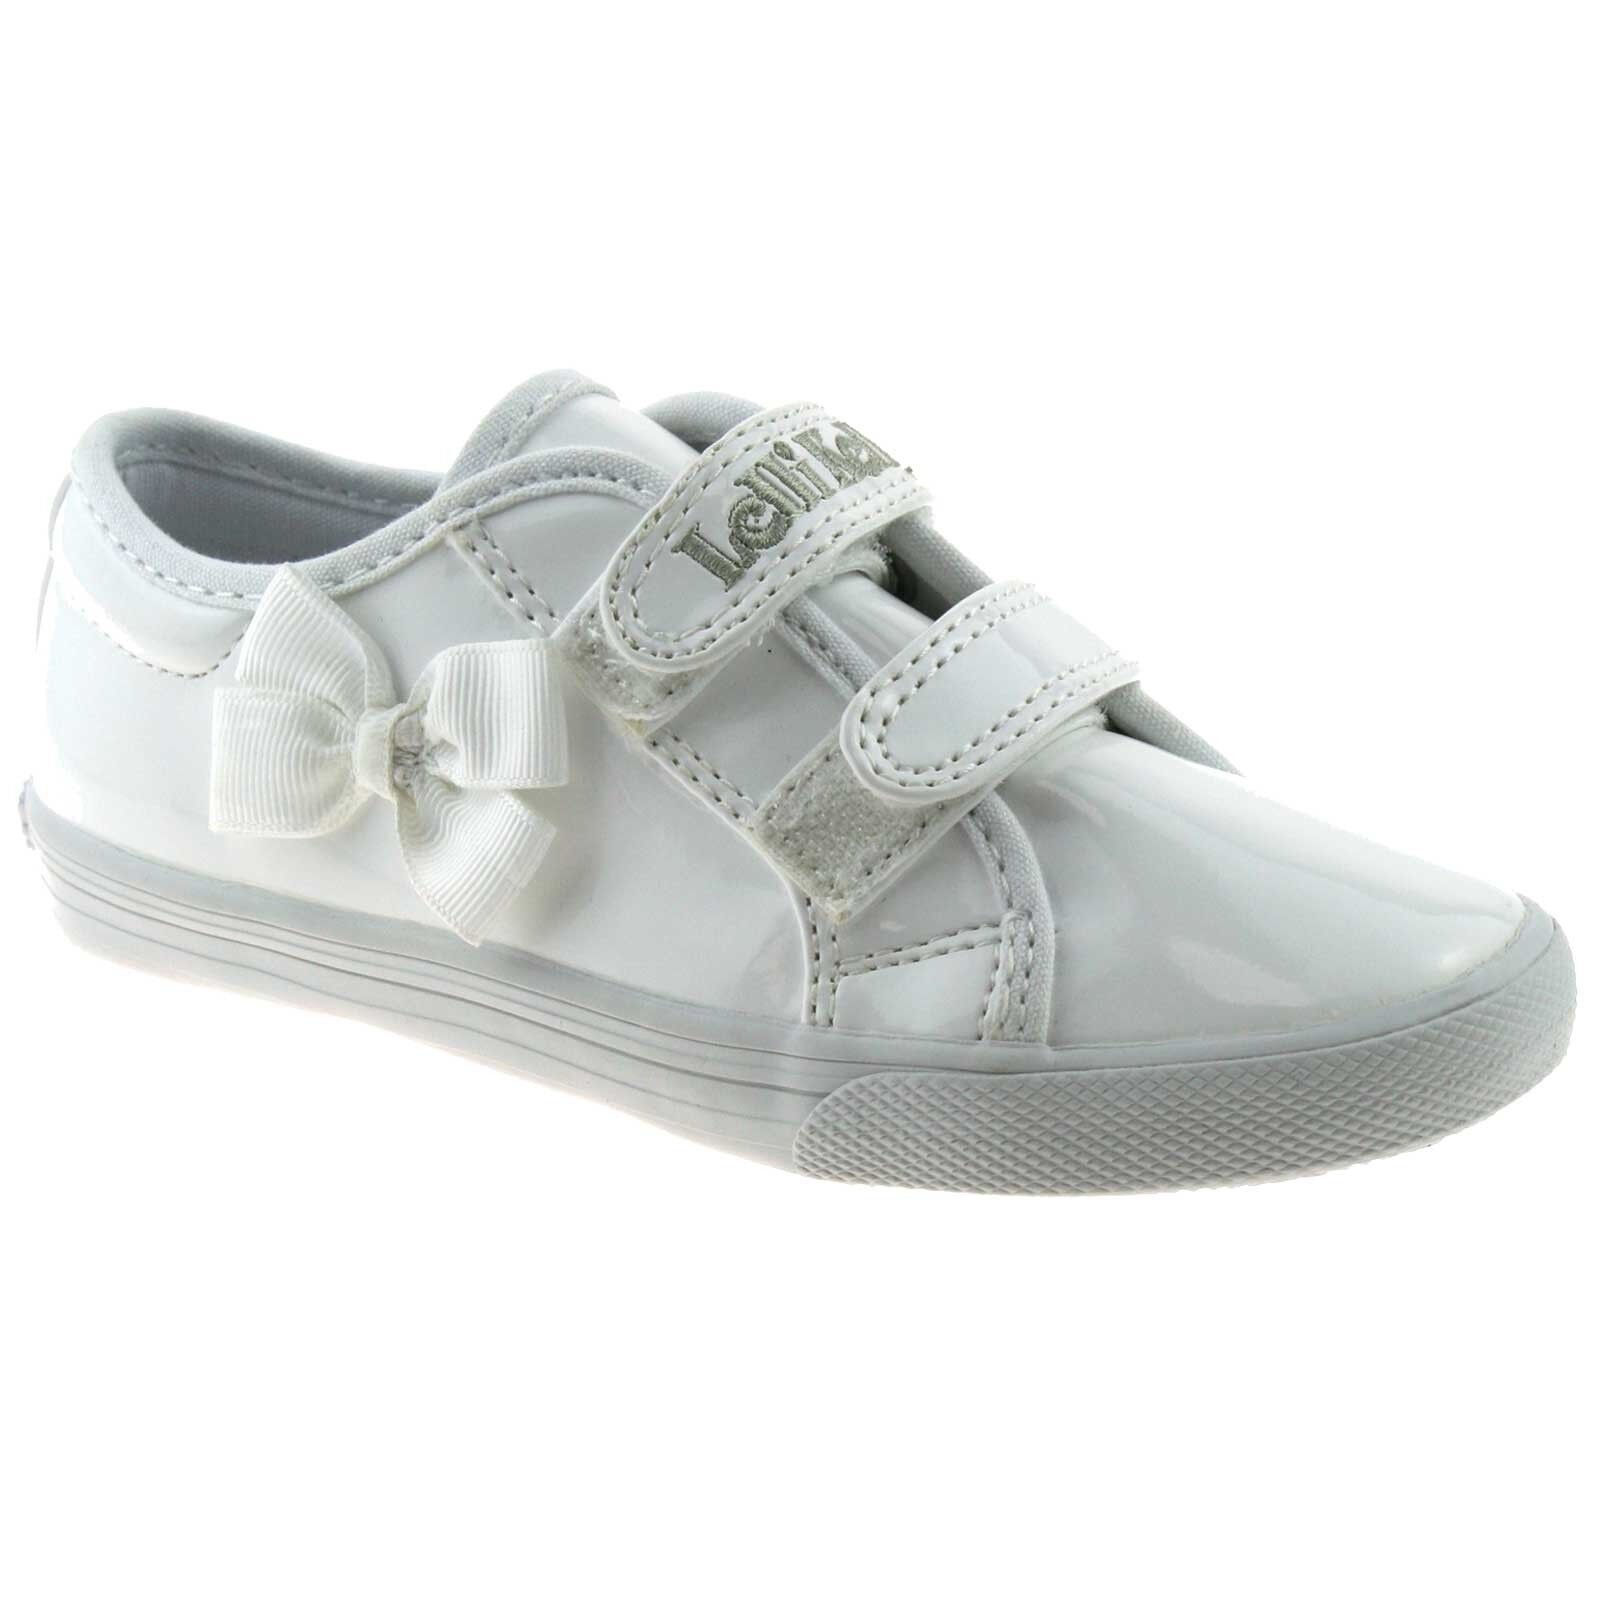 BA01 Lelli Kelly LK8199 White Lily Canvas School Pumps